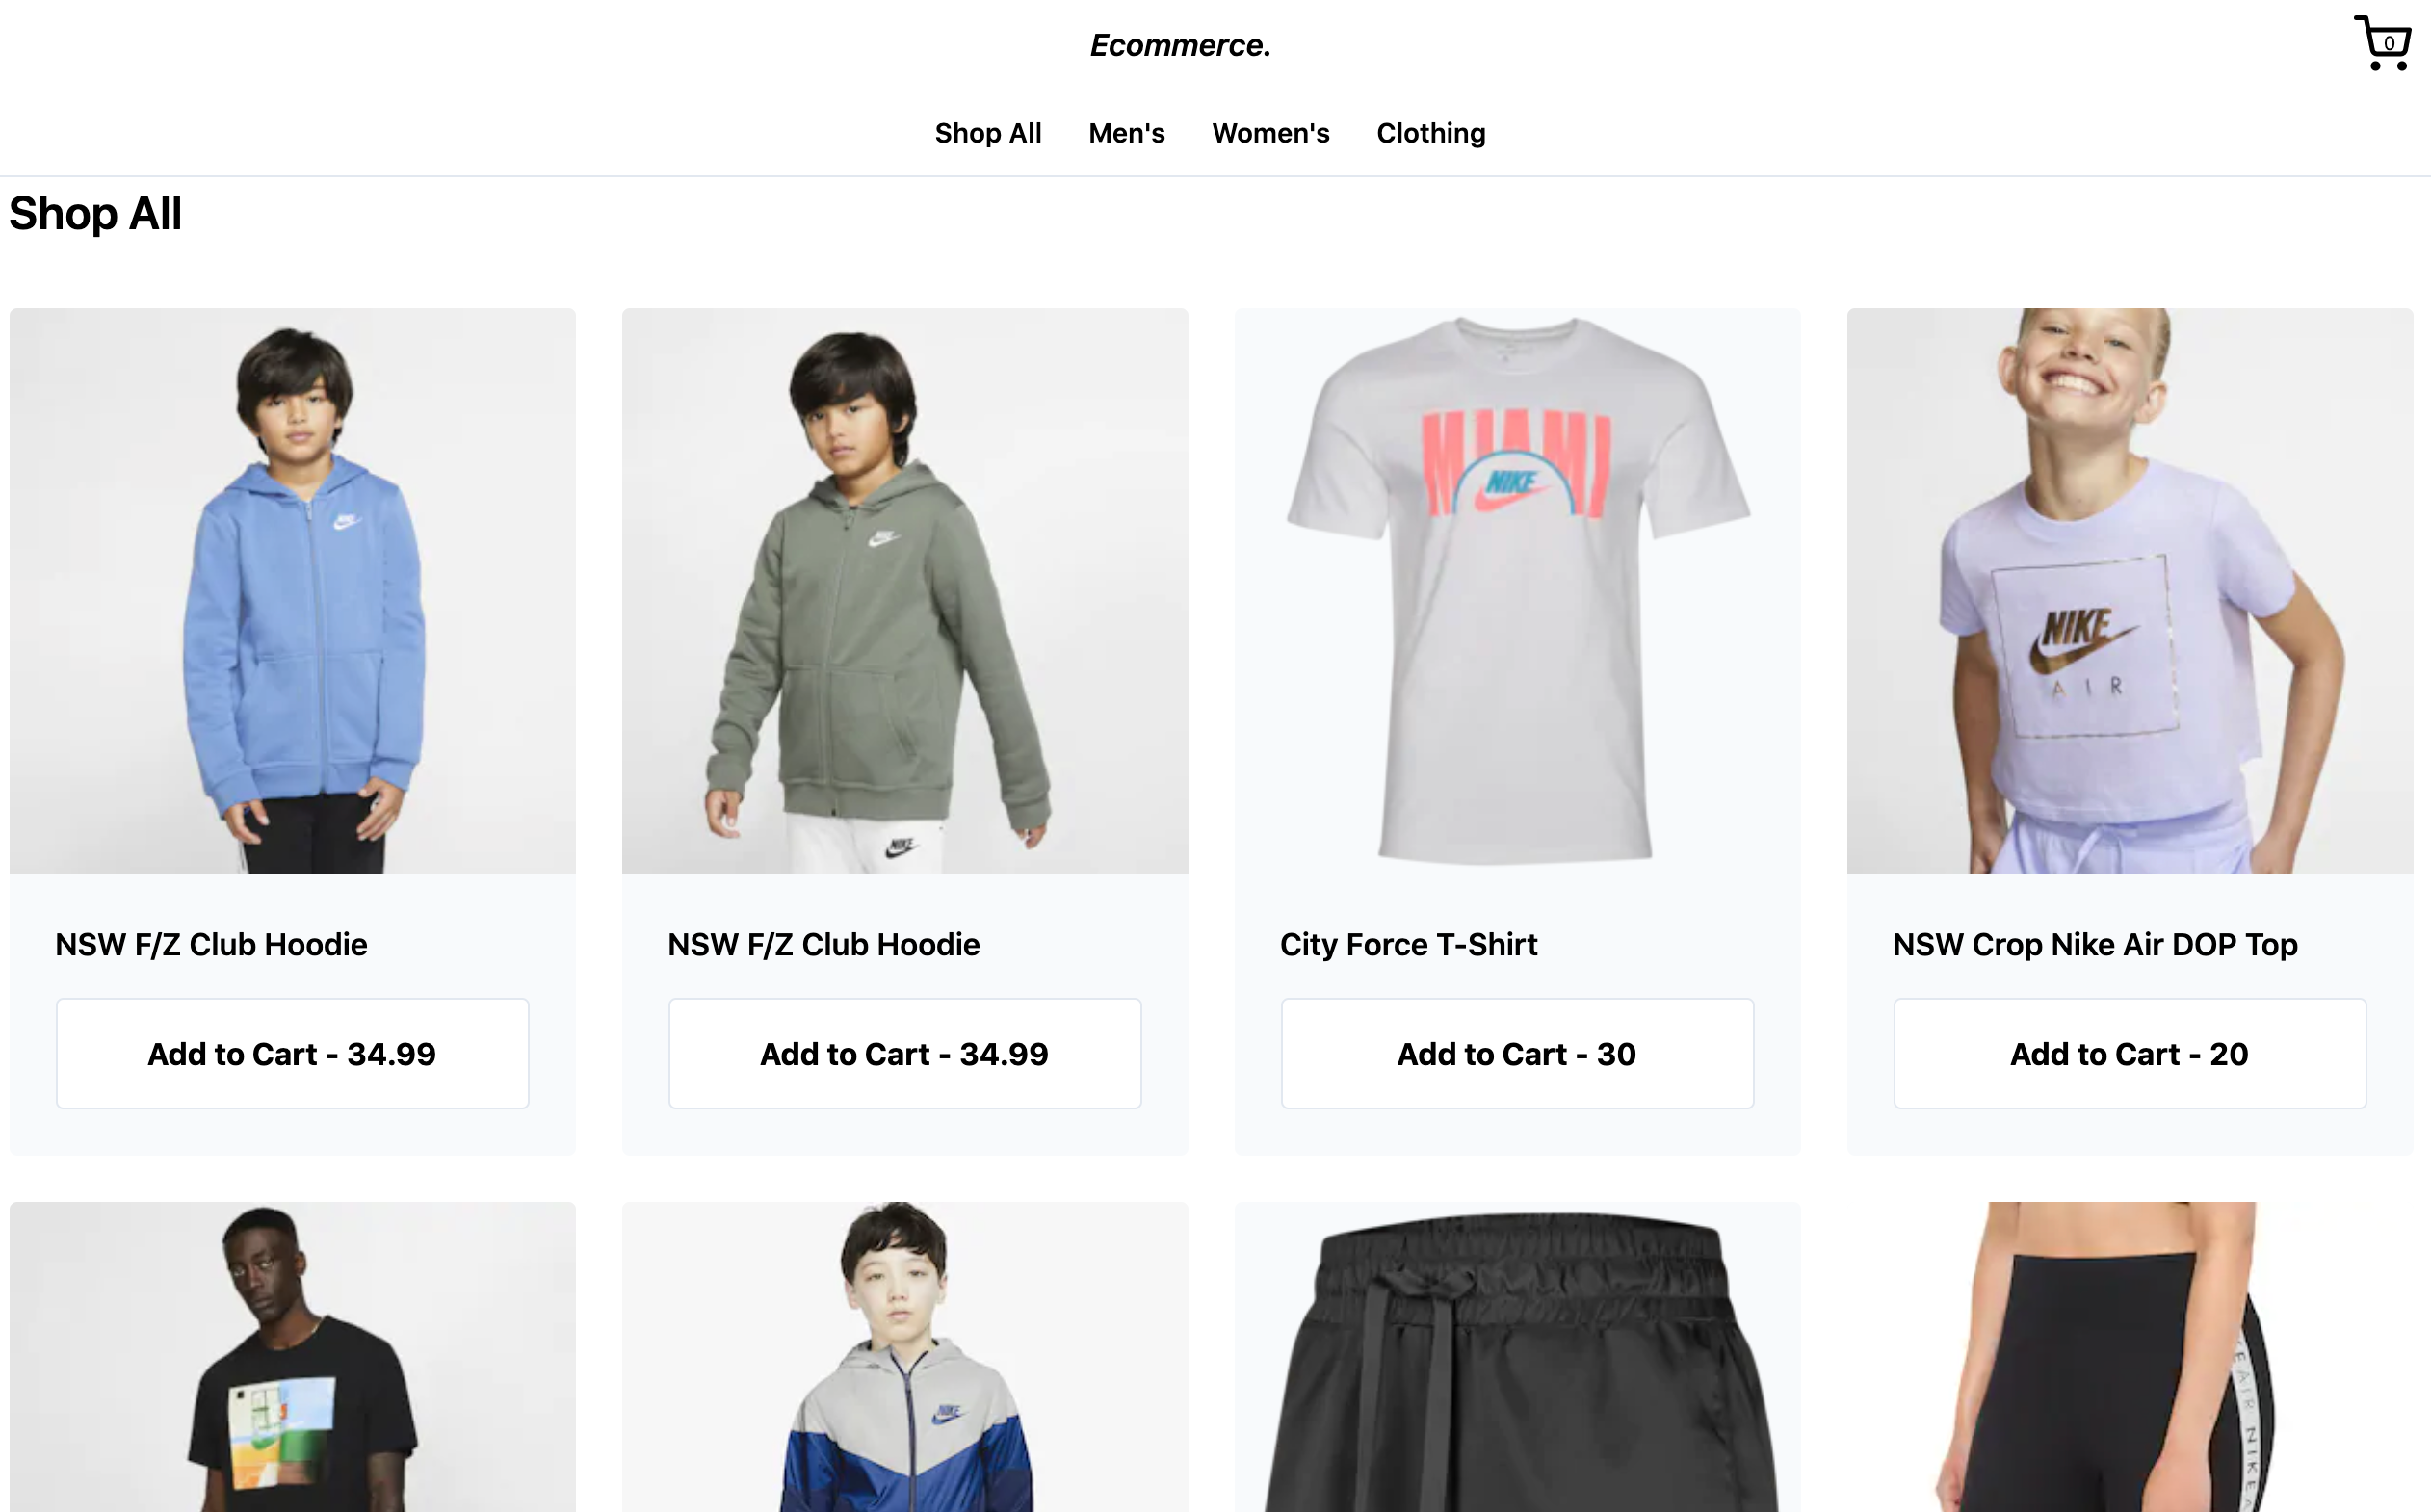 ecommerce-search-results-personalized